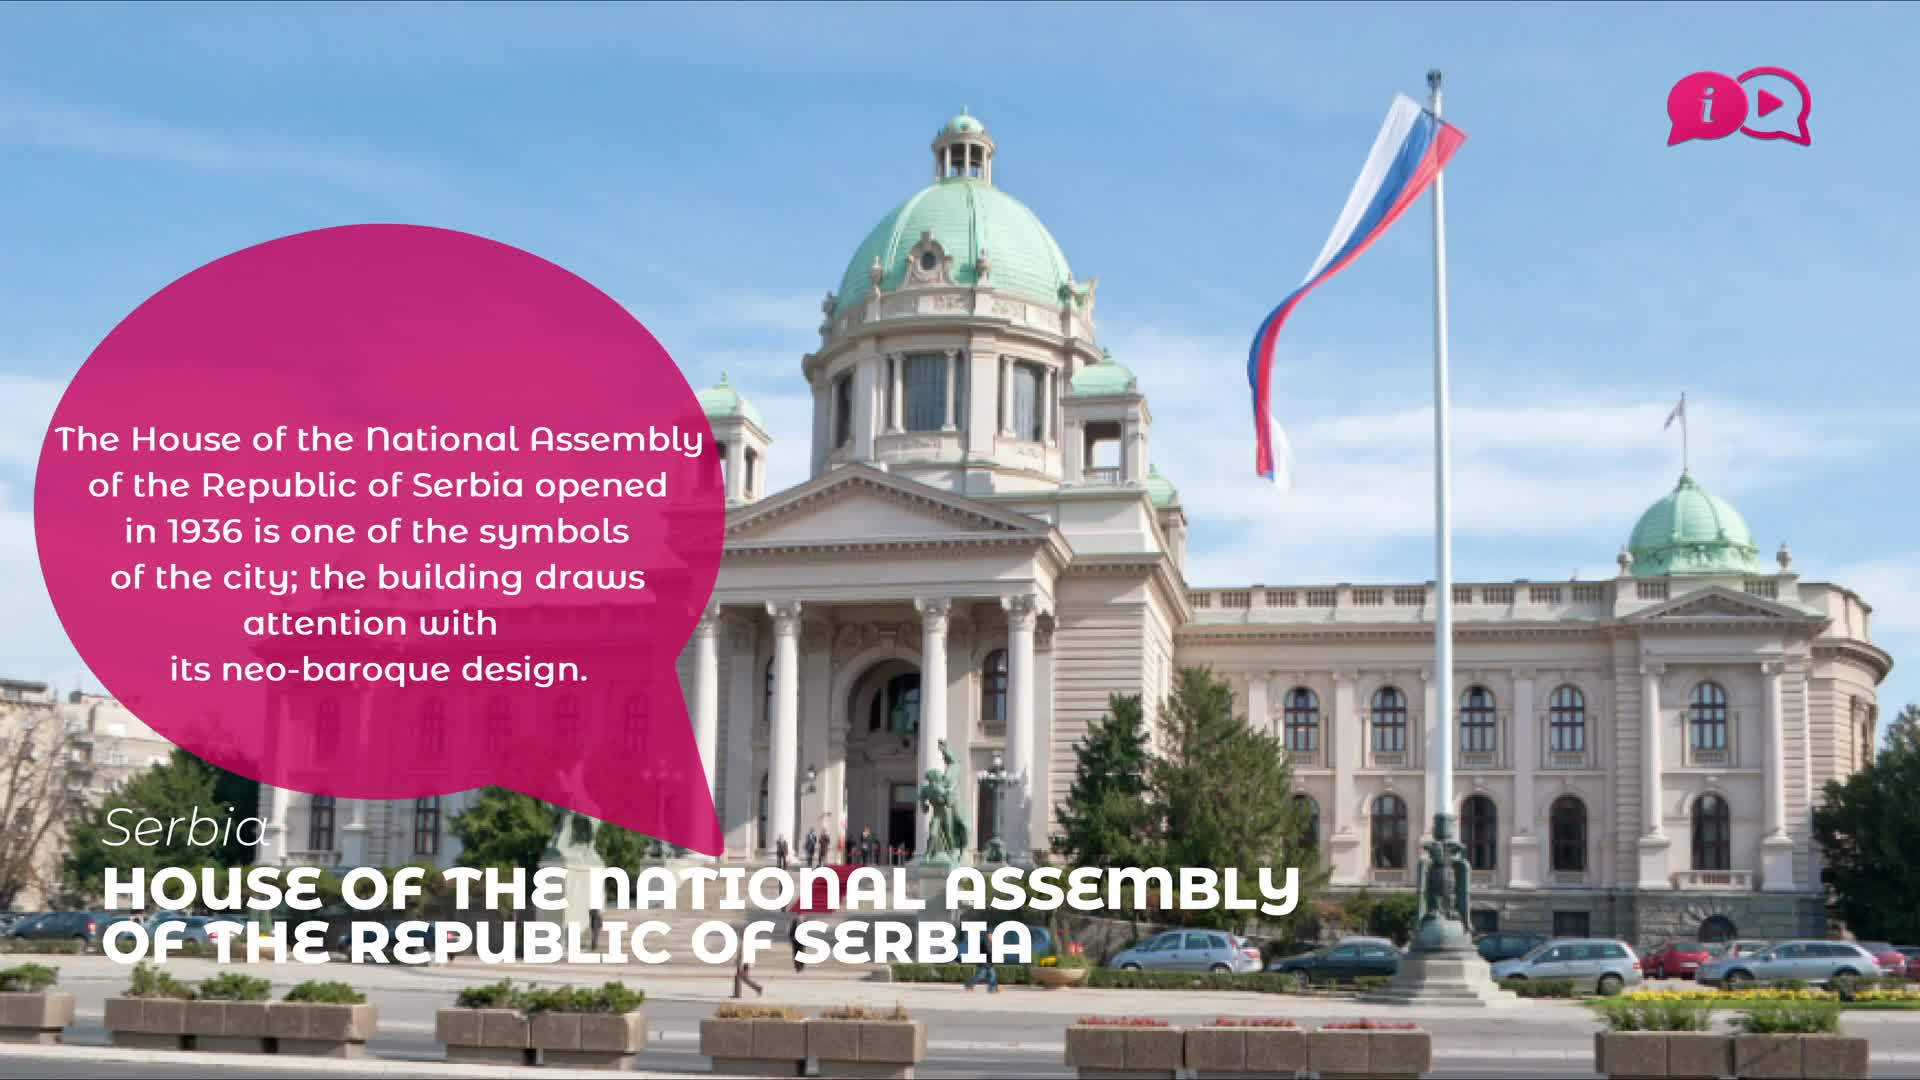 THE HOUSE OF THE NATIONAL ASSEMBLY OF THE REPUBLIC OF SERBIA